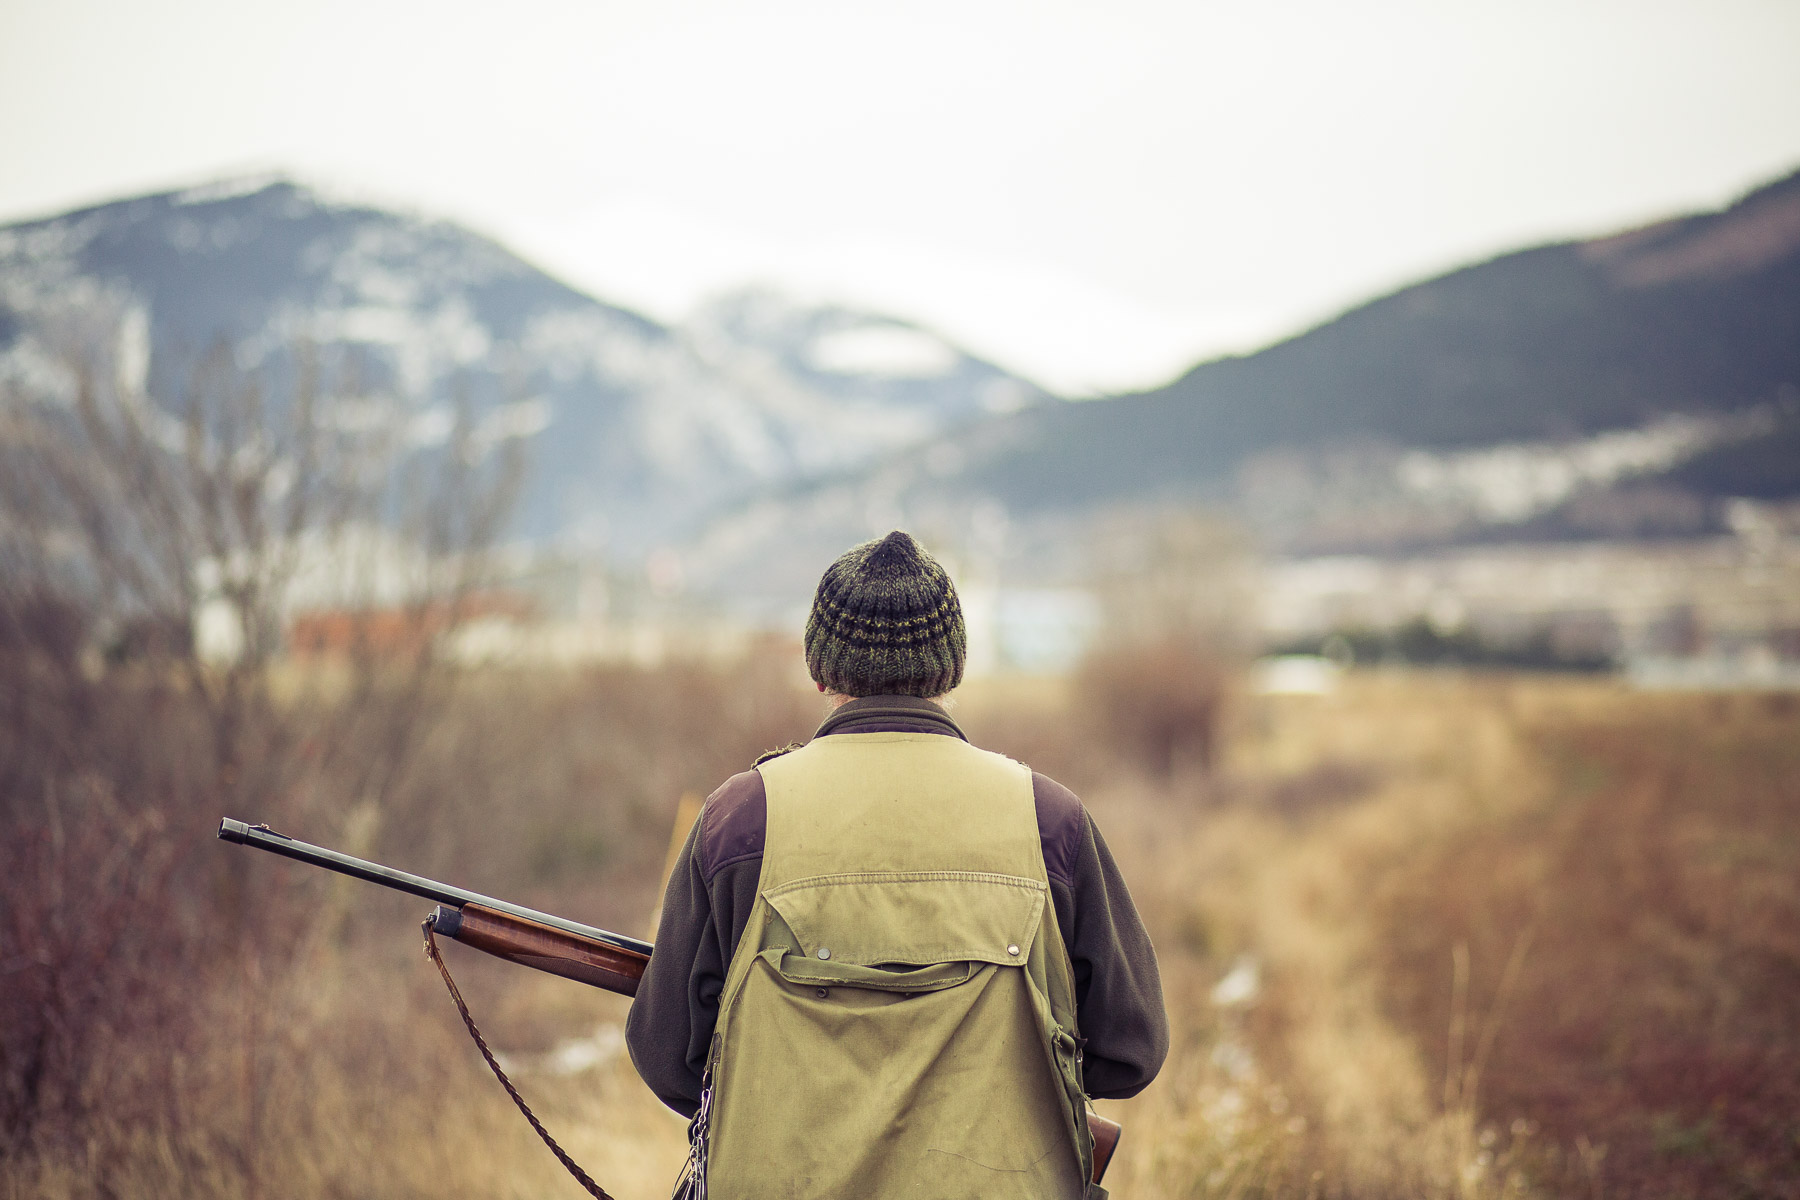 3dog-lifestyle-photographer-hunter-dogs-fetching-pheasants-nature-outdoors-bloodhounts-.jpg